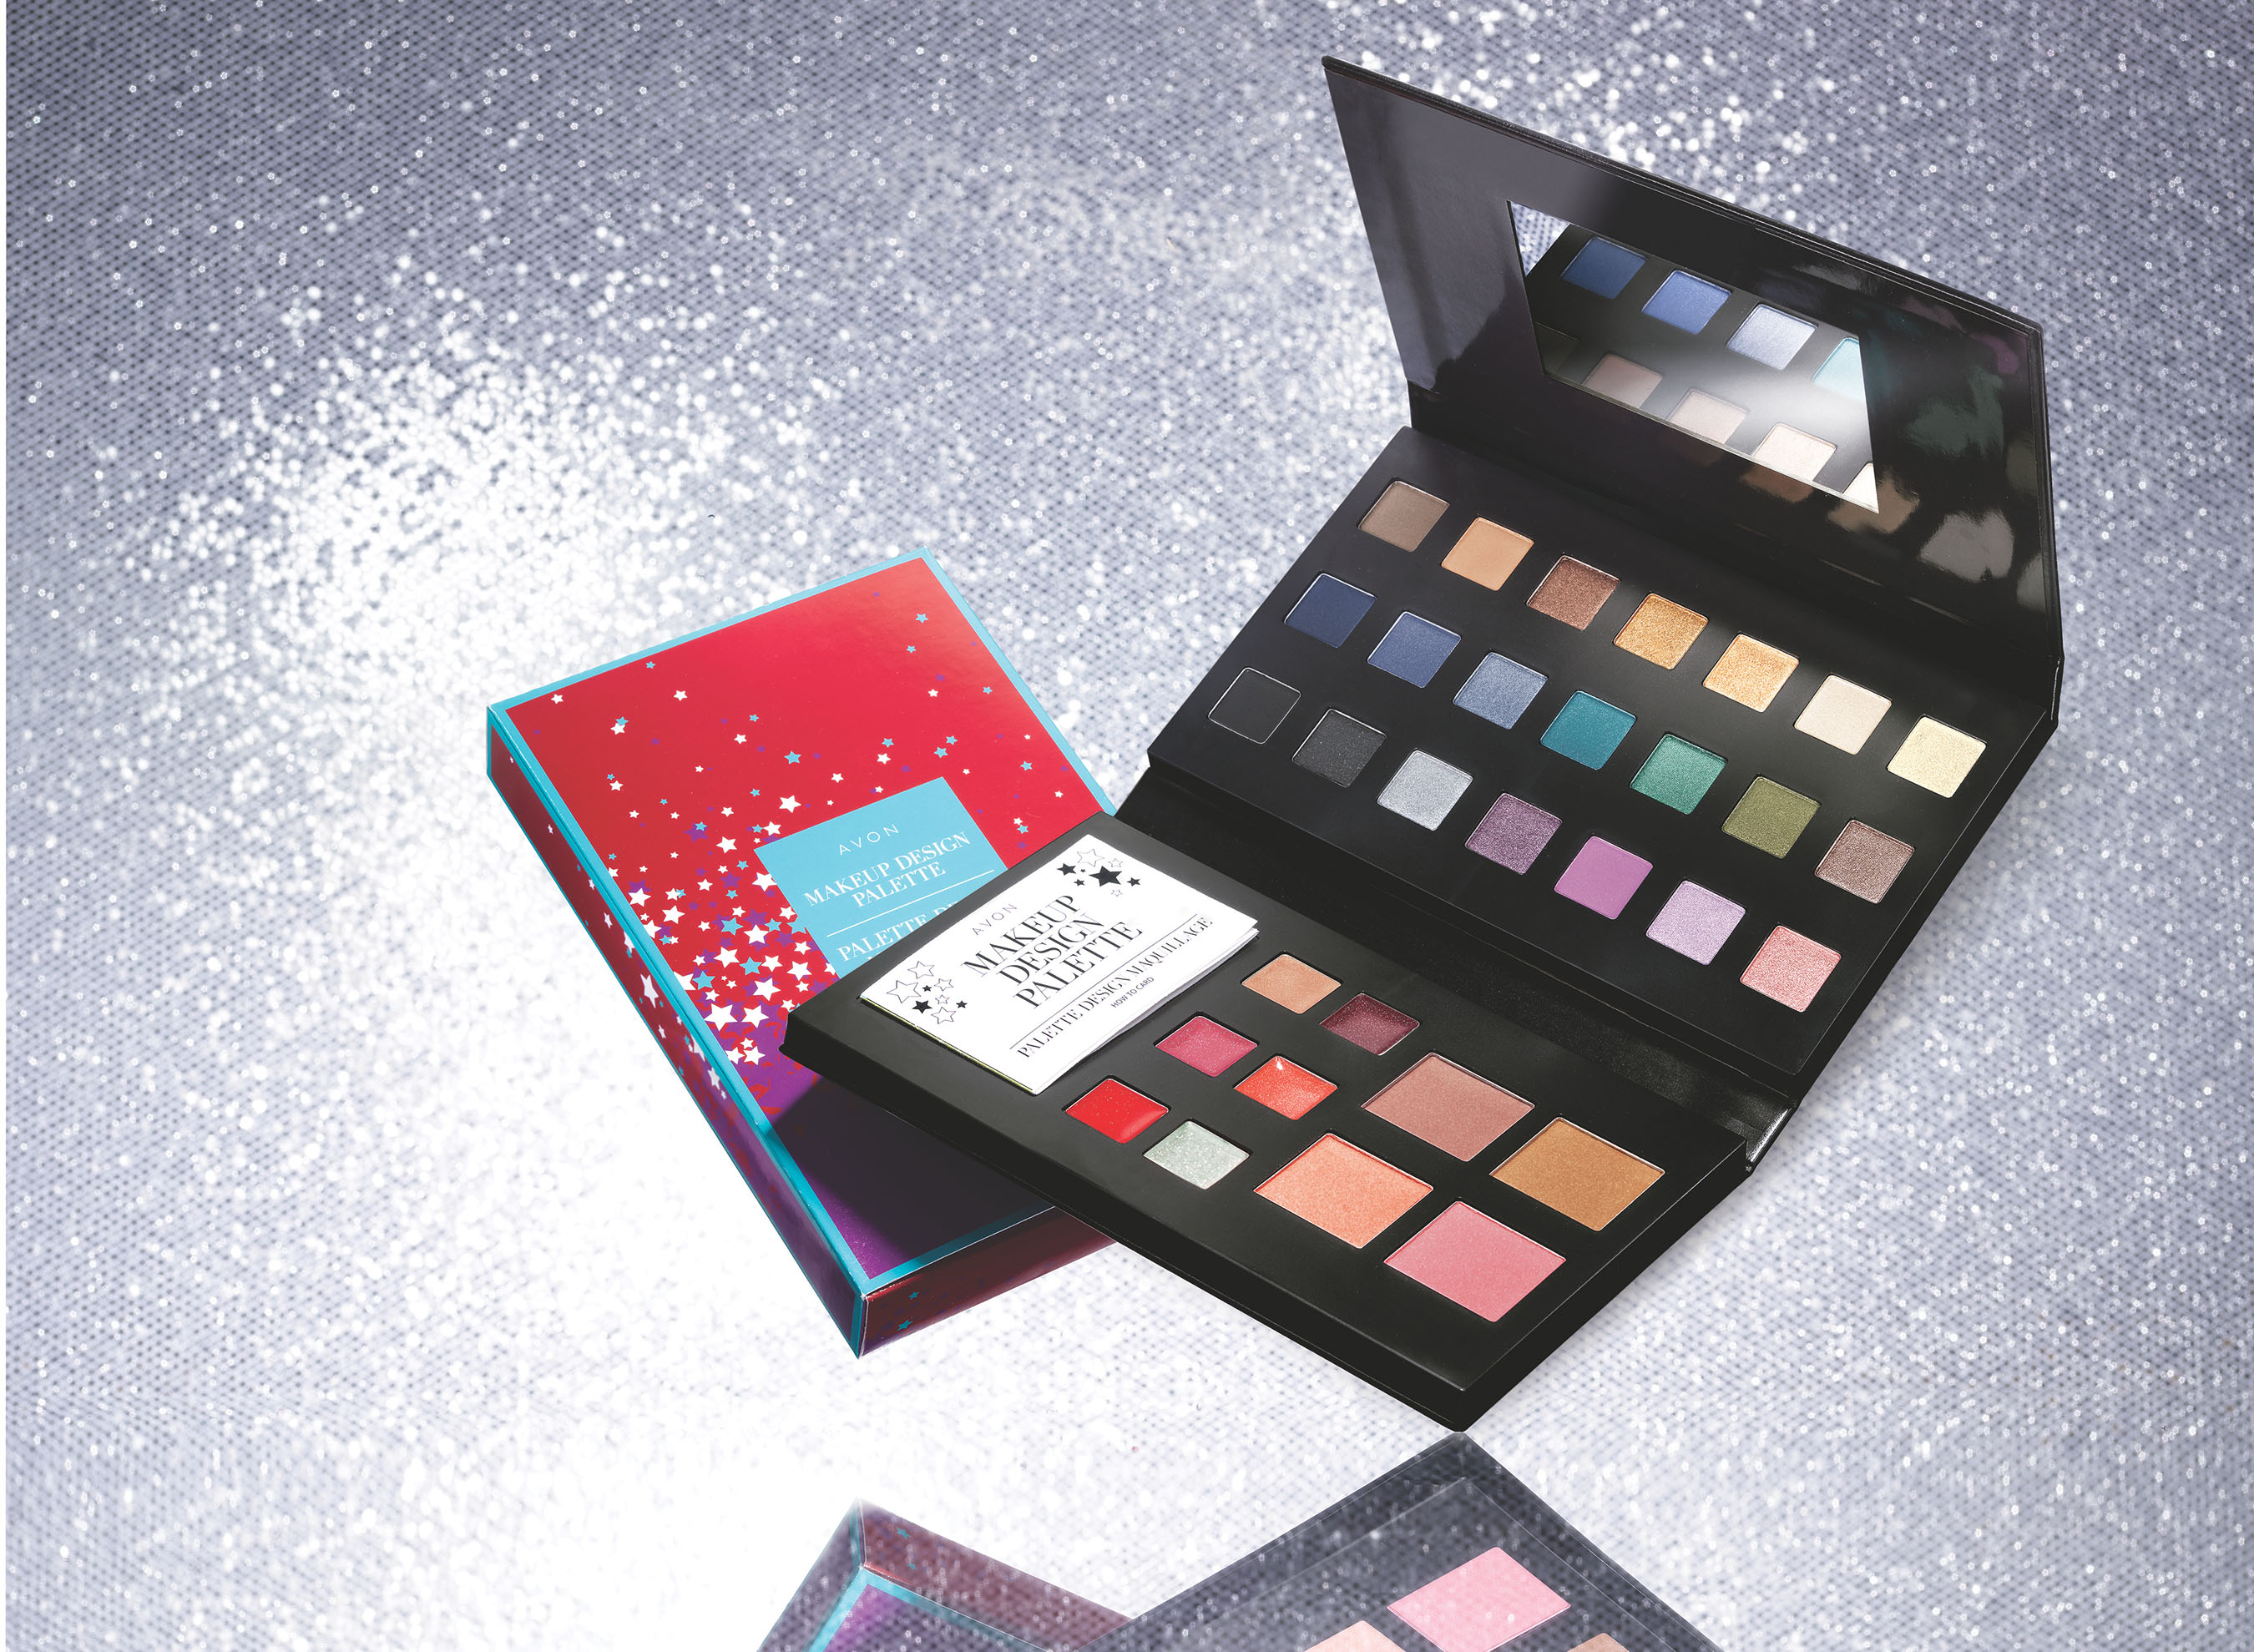 This tri-fold palette has 31 on-trend shades for eyes, lips, and face, and is the ultimate gift for every beauty lover.